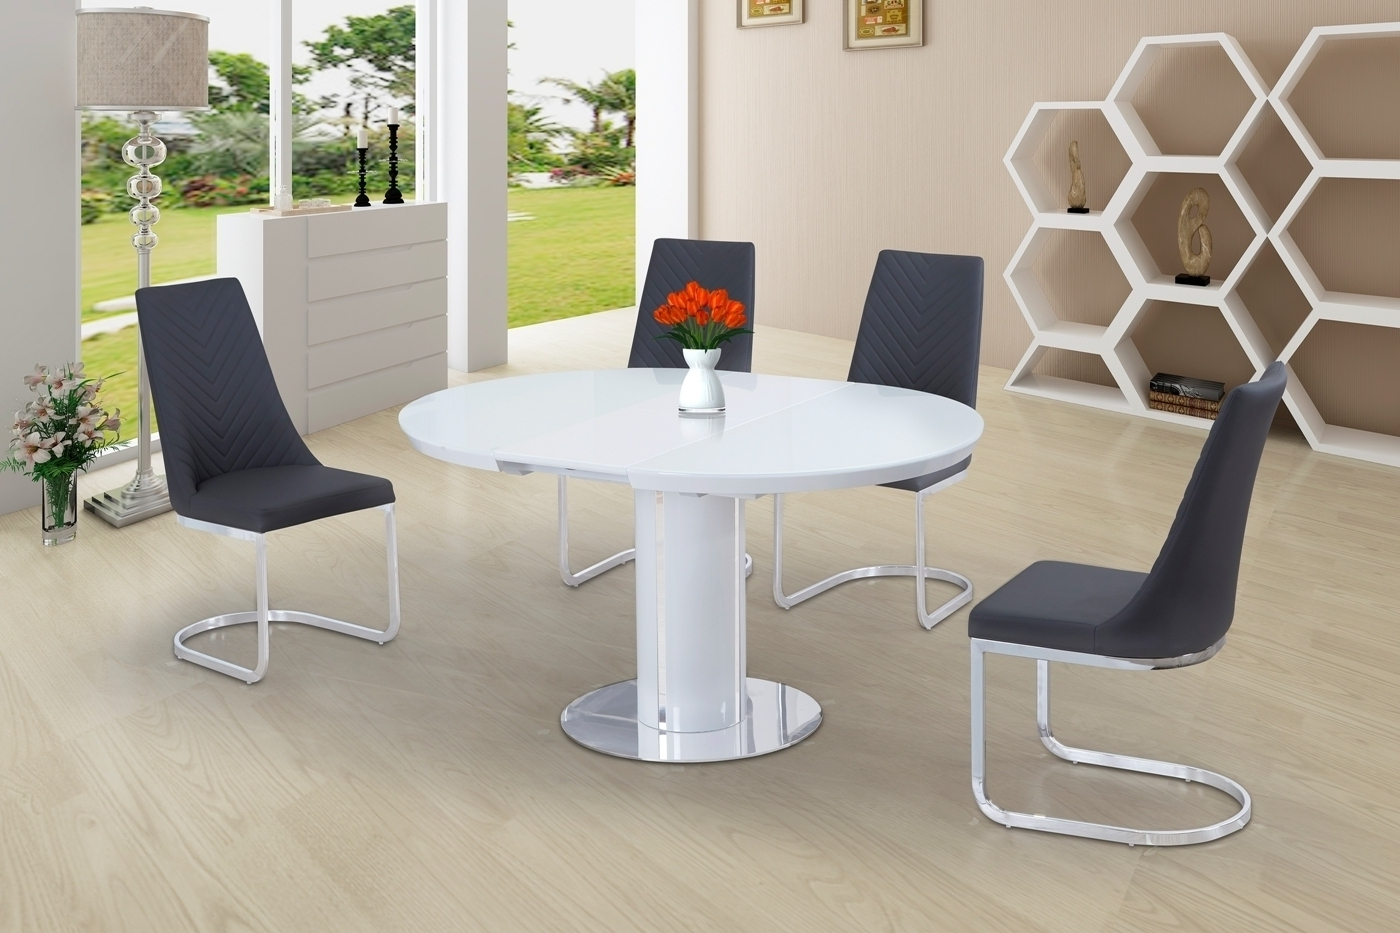 Best And Newest White Gloss Dining Room Furniture With Round White Glass High Gloss Dining Table And 6 Grey Chairs Set (Gallery 9 of 25)